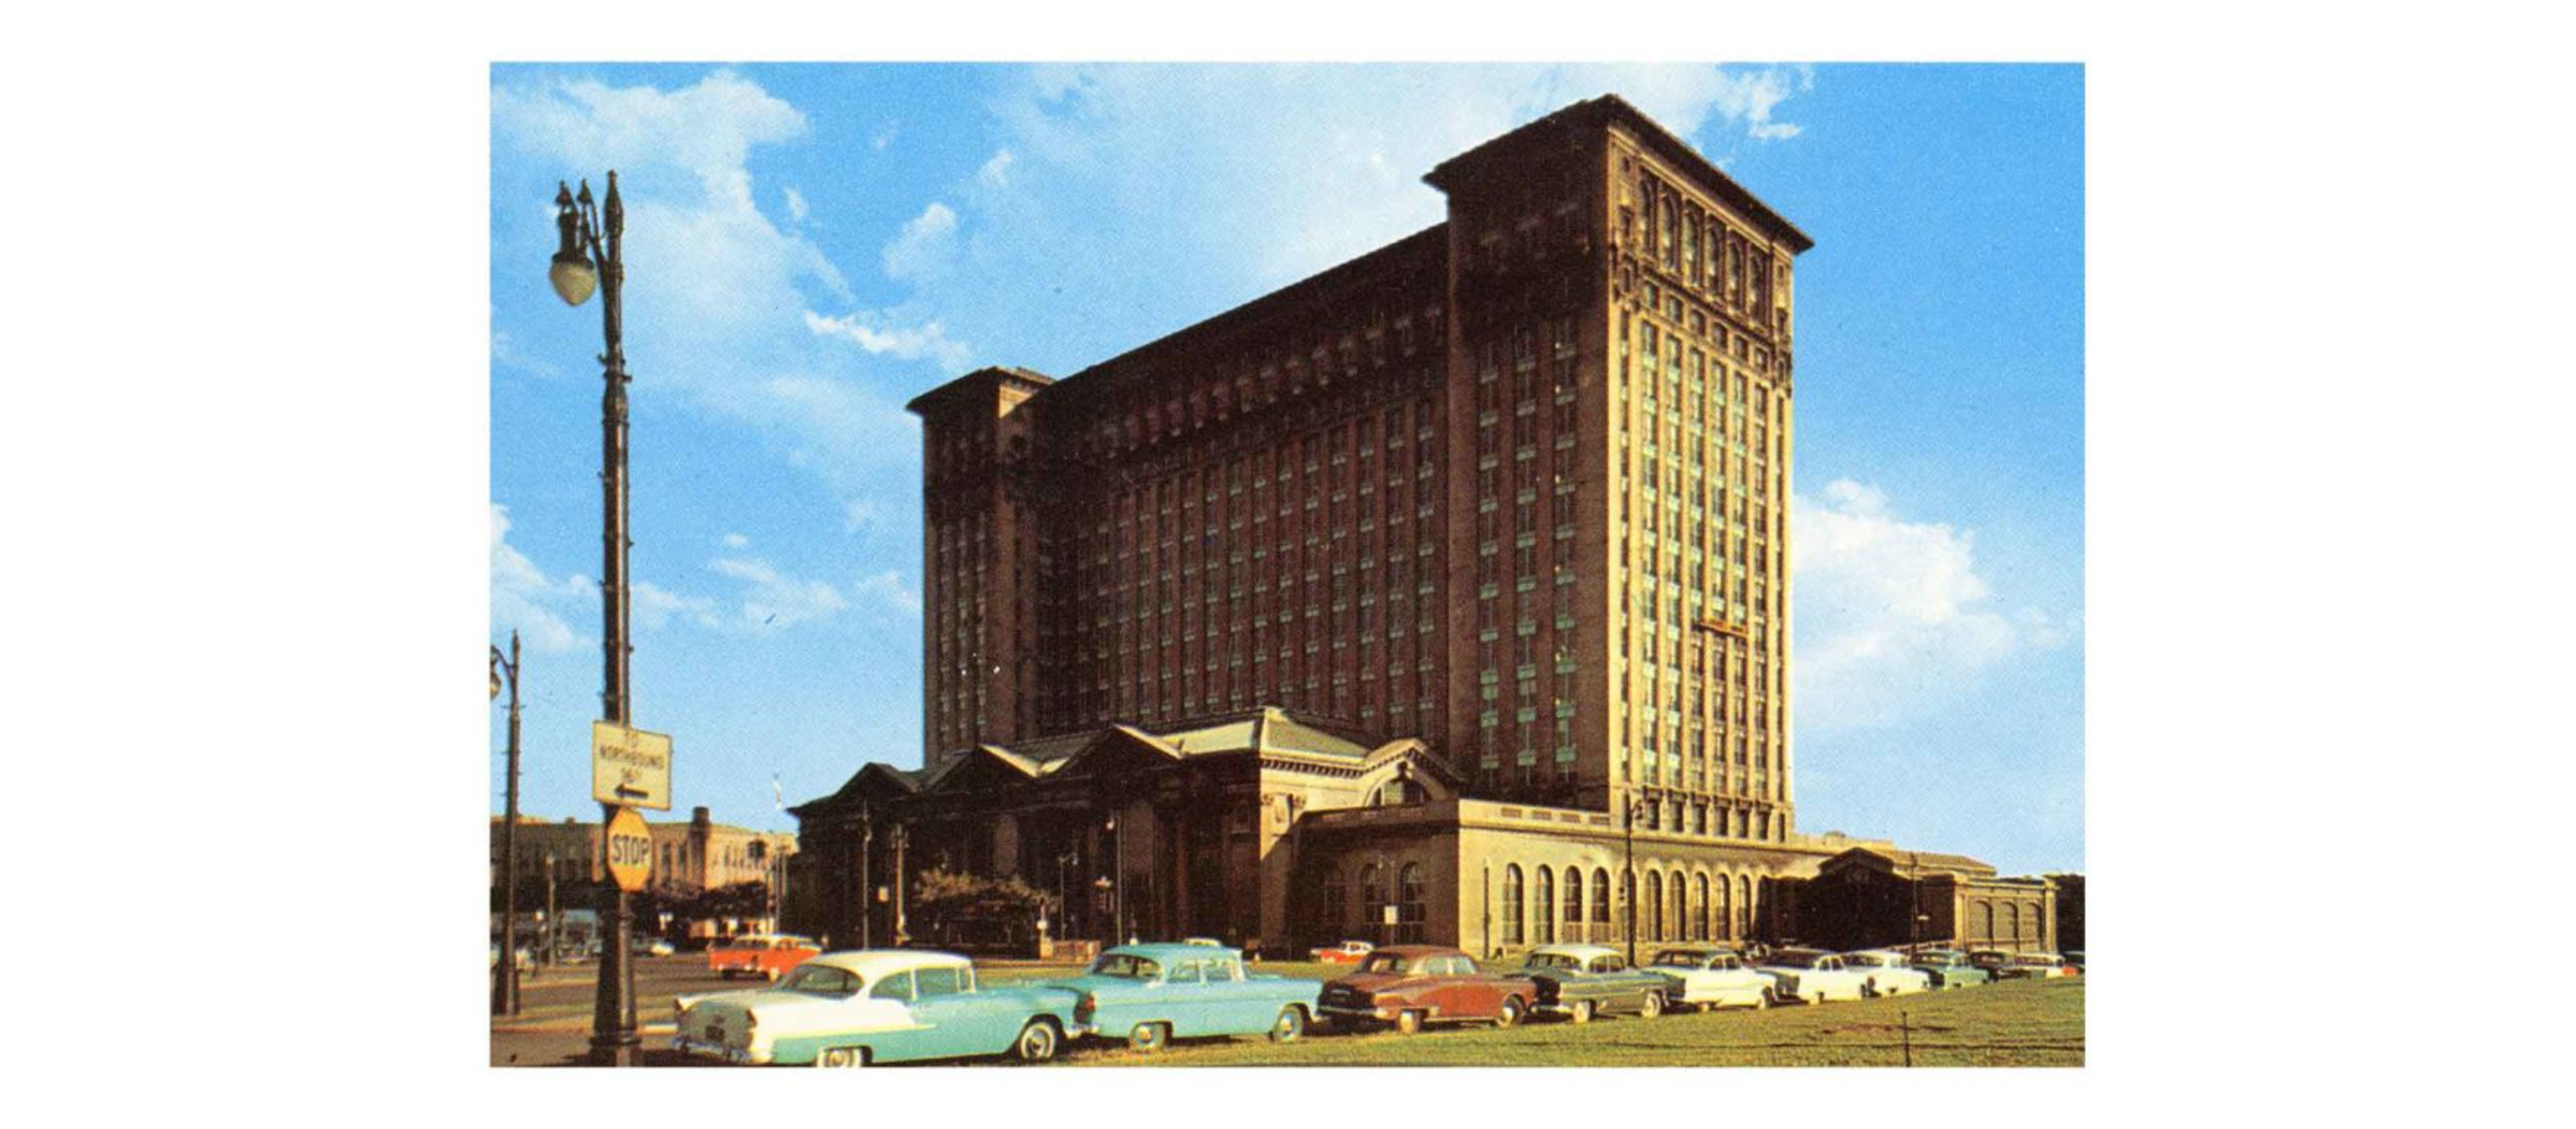 historic photo of Michigan Central Station